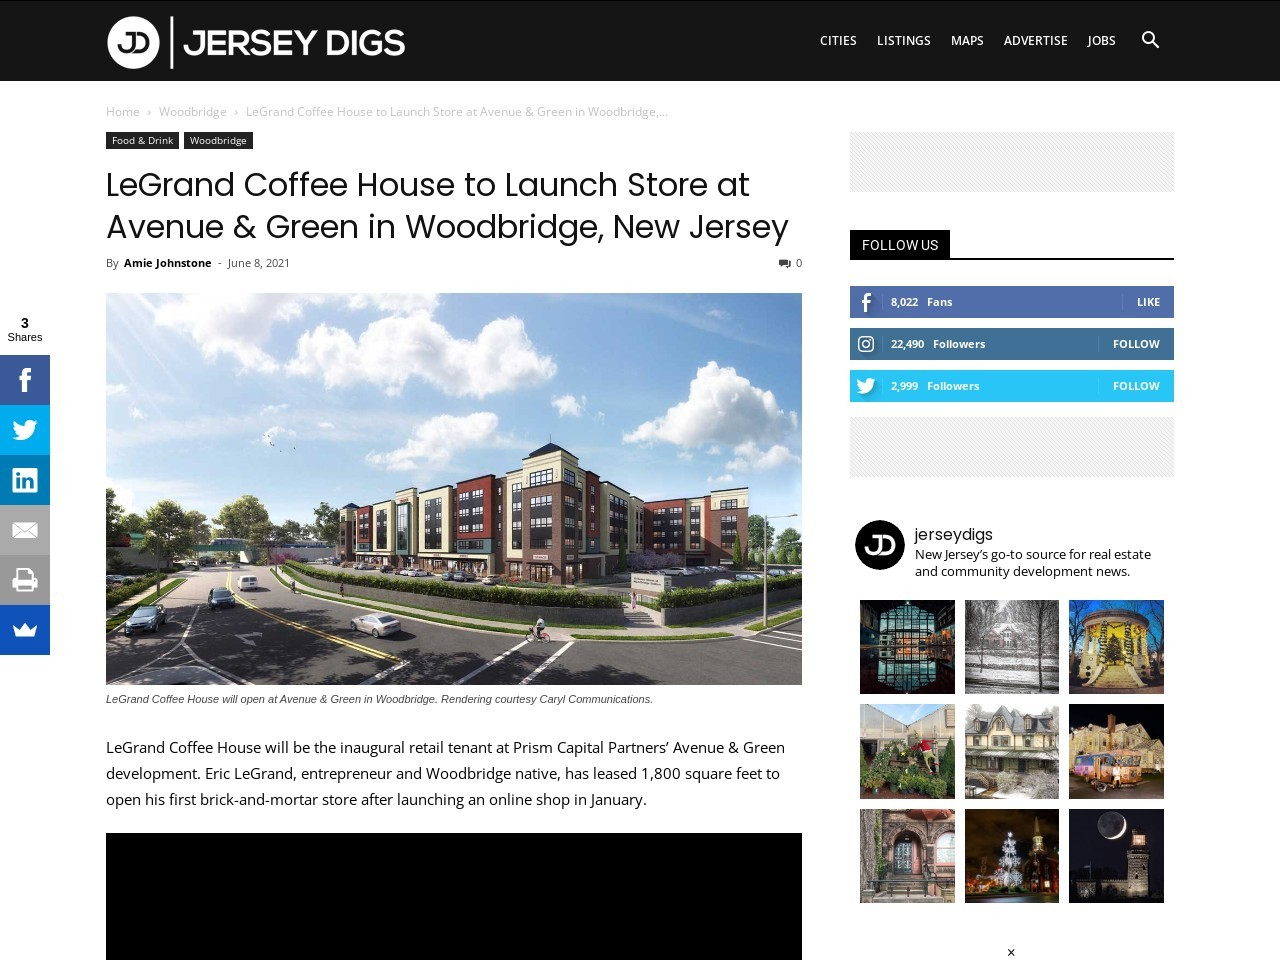 LeGrand Coffee House to Launch Store at Avenue & Green in Woodbridge, New Jersey